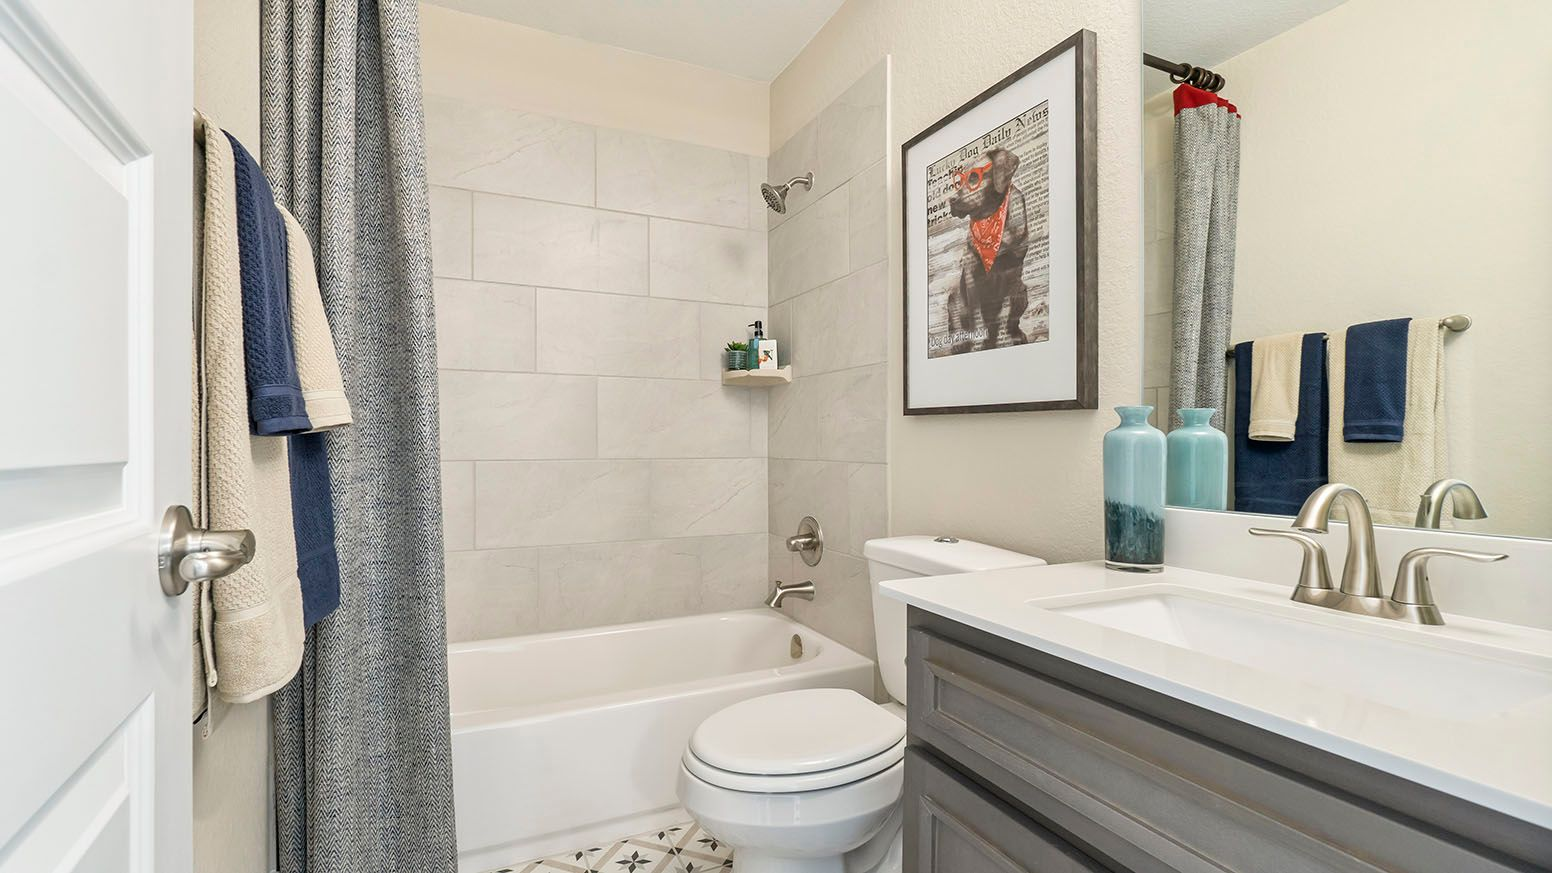 Bathroom featured in the Rollingwood By Empire Communities in San Antonio, TX